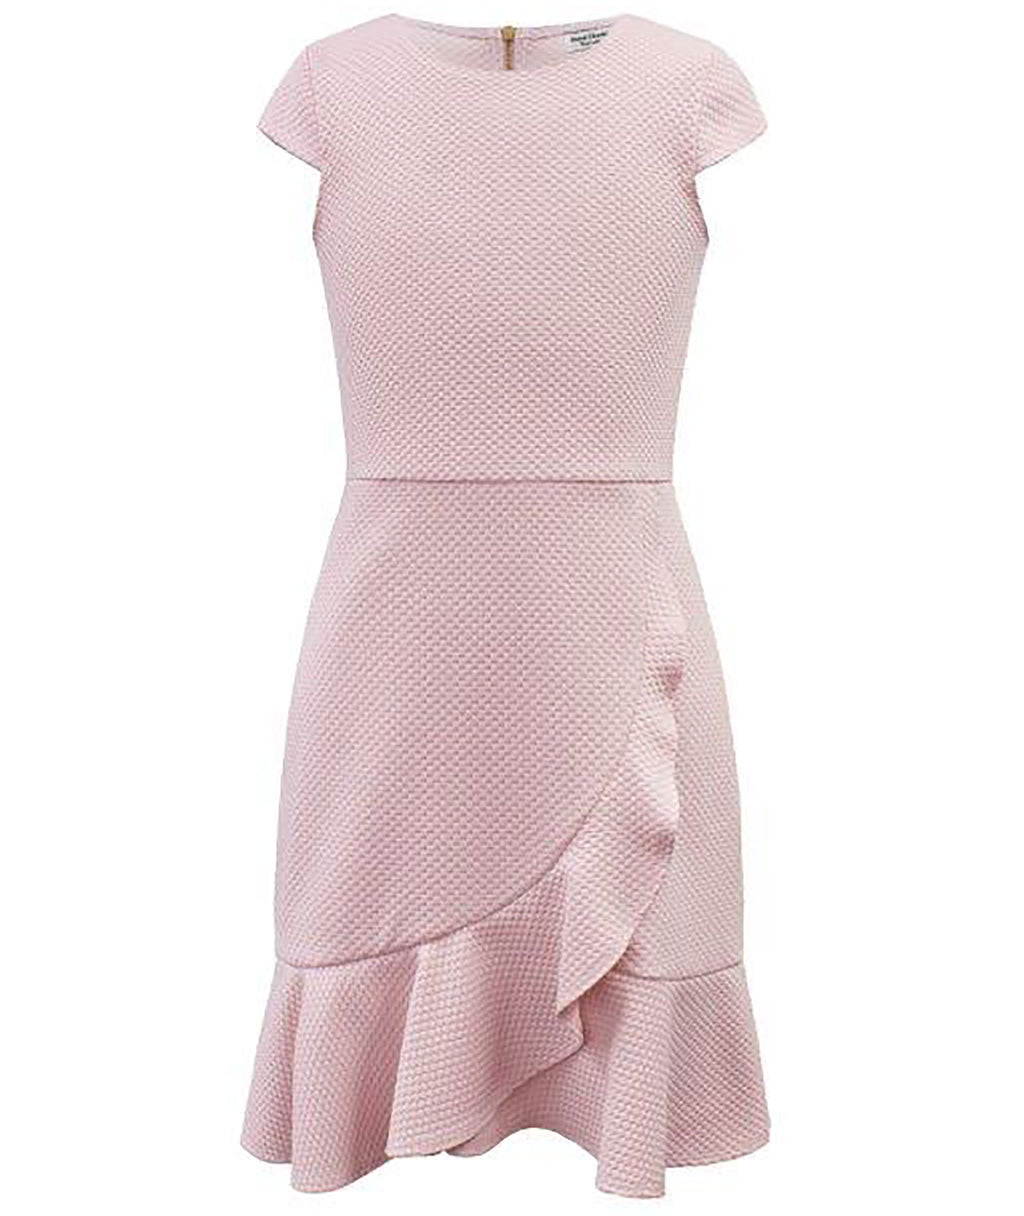 David Charles Girls Pink Ruffle Dress